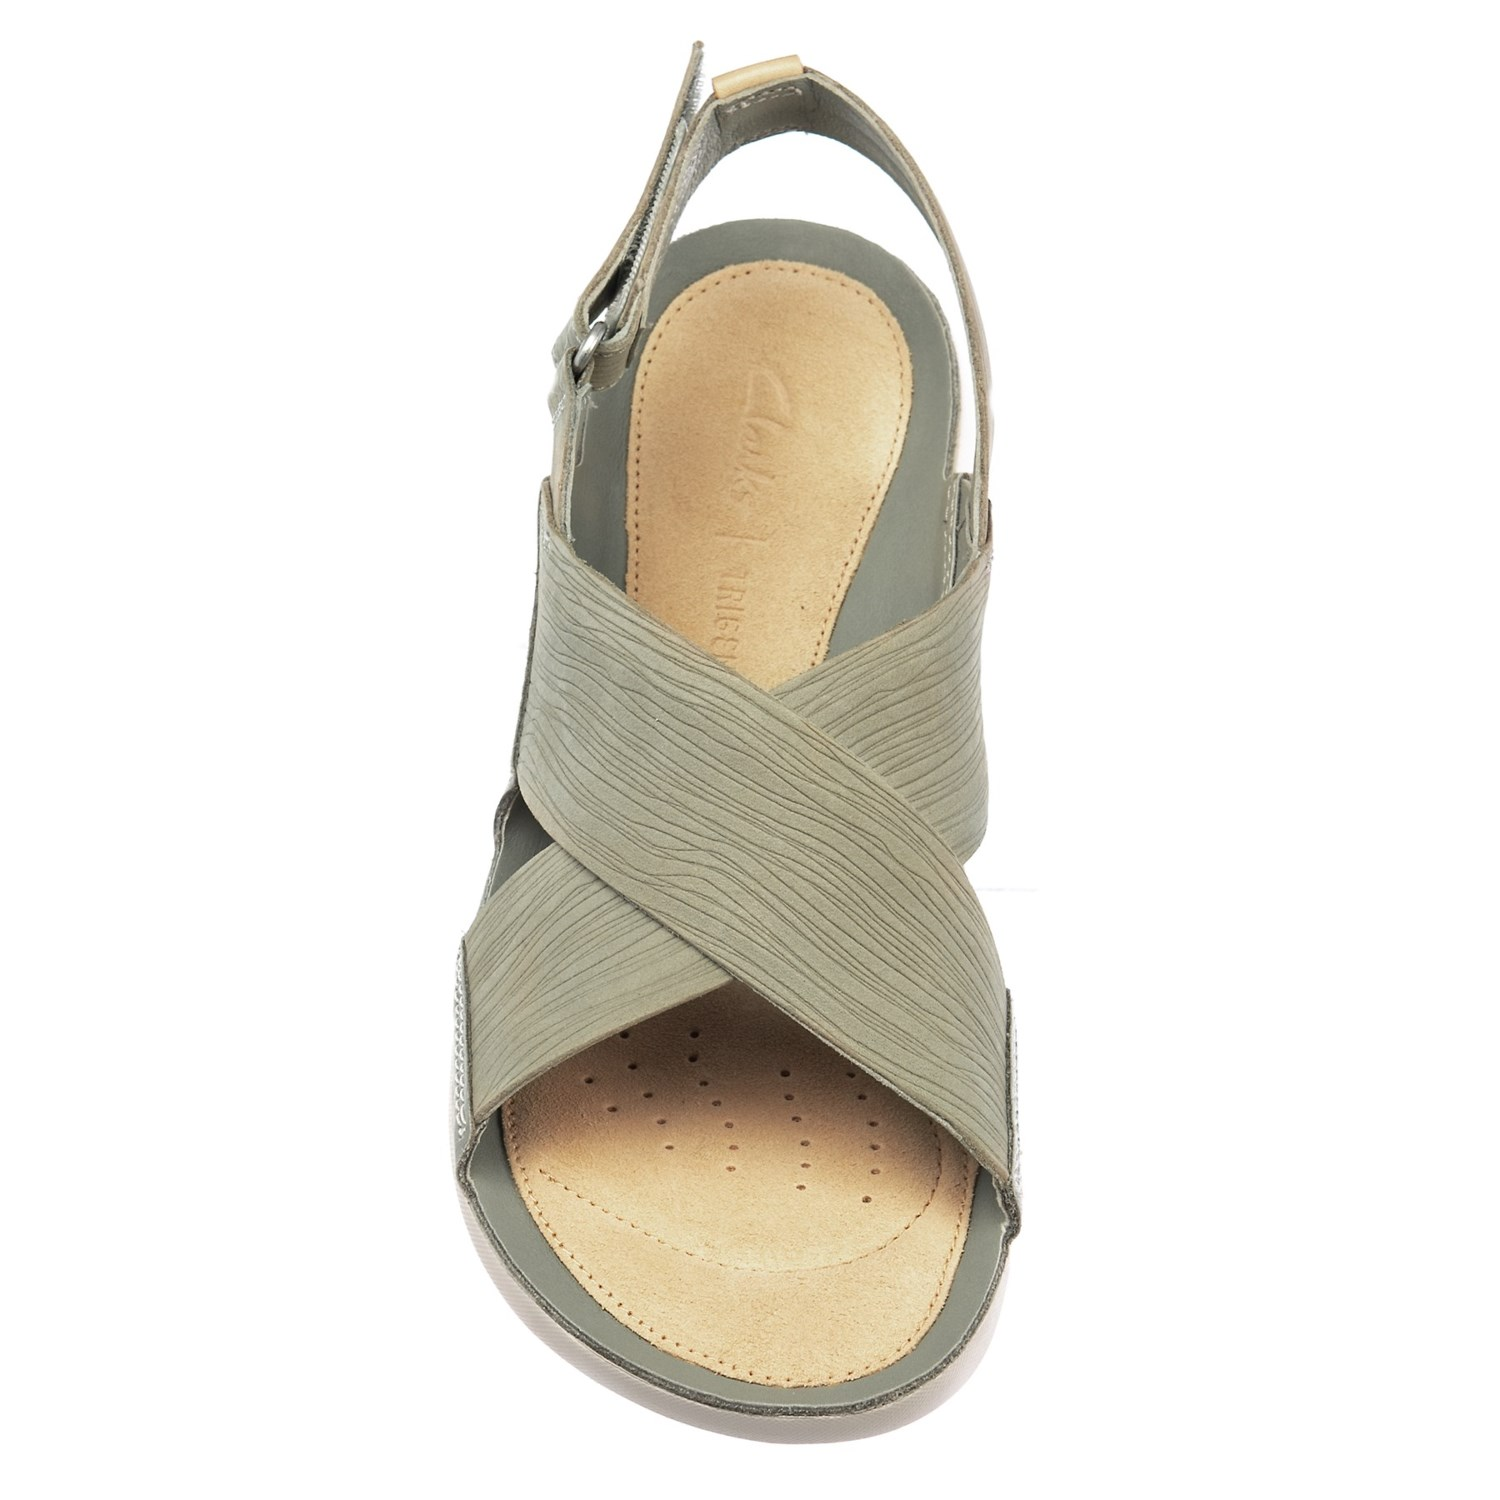 46e28b3ee80a Clarks Tri Chloe Sandals (For Women) - Save 60%